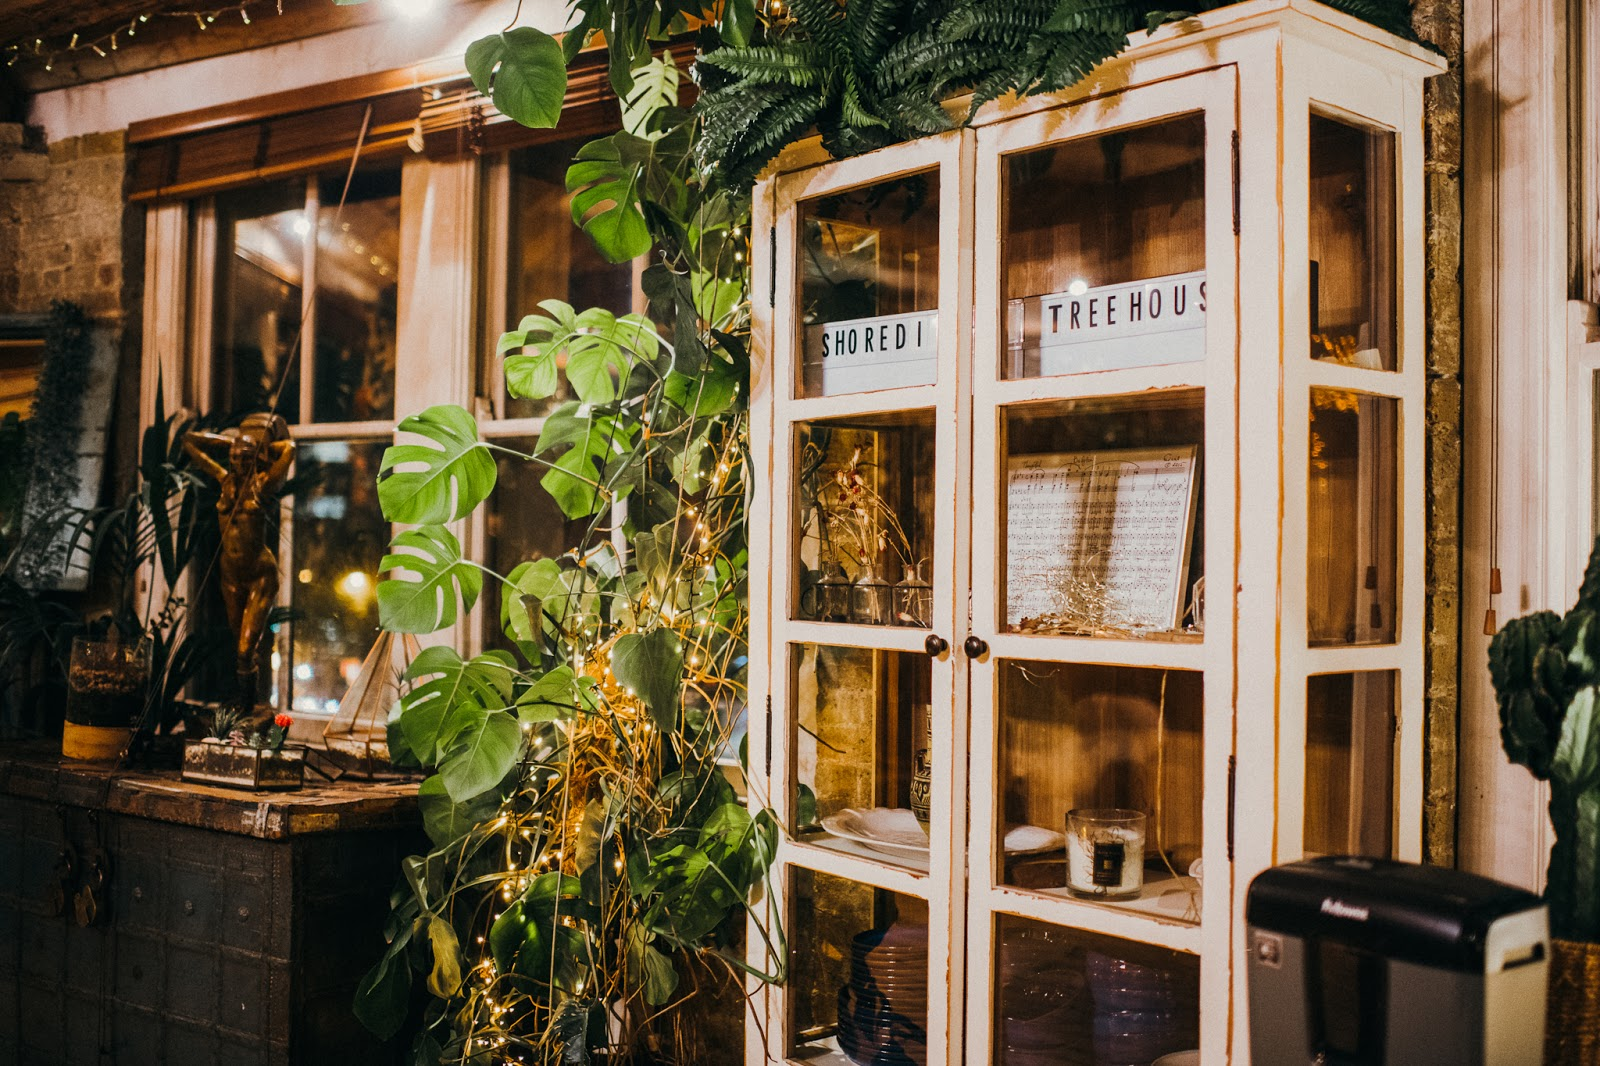 A window with various tall potted plants in front and a white glass cabinet with various ornaments inside.